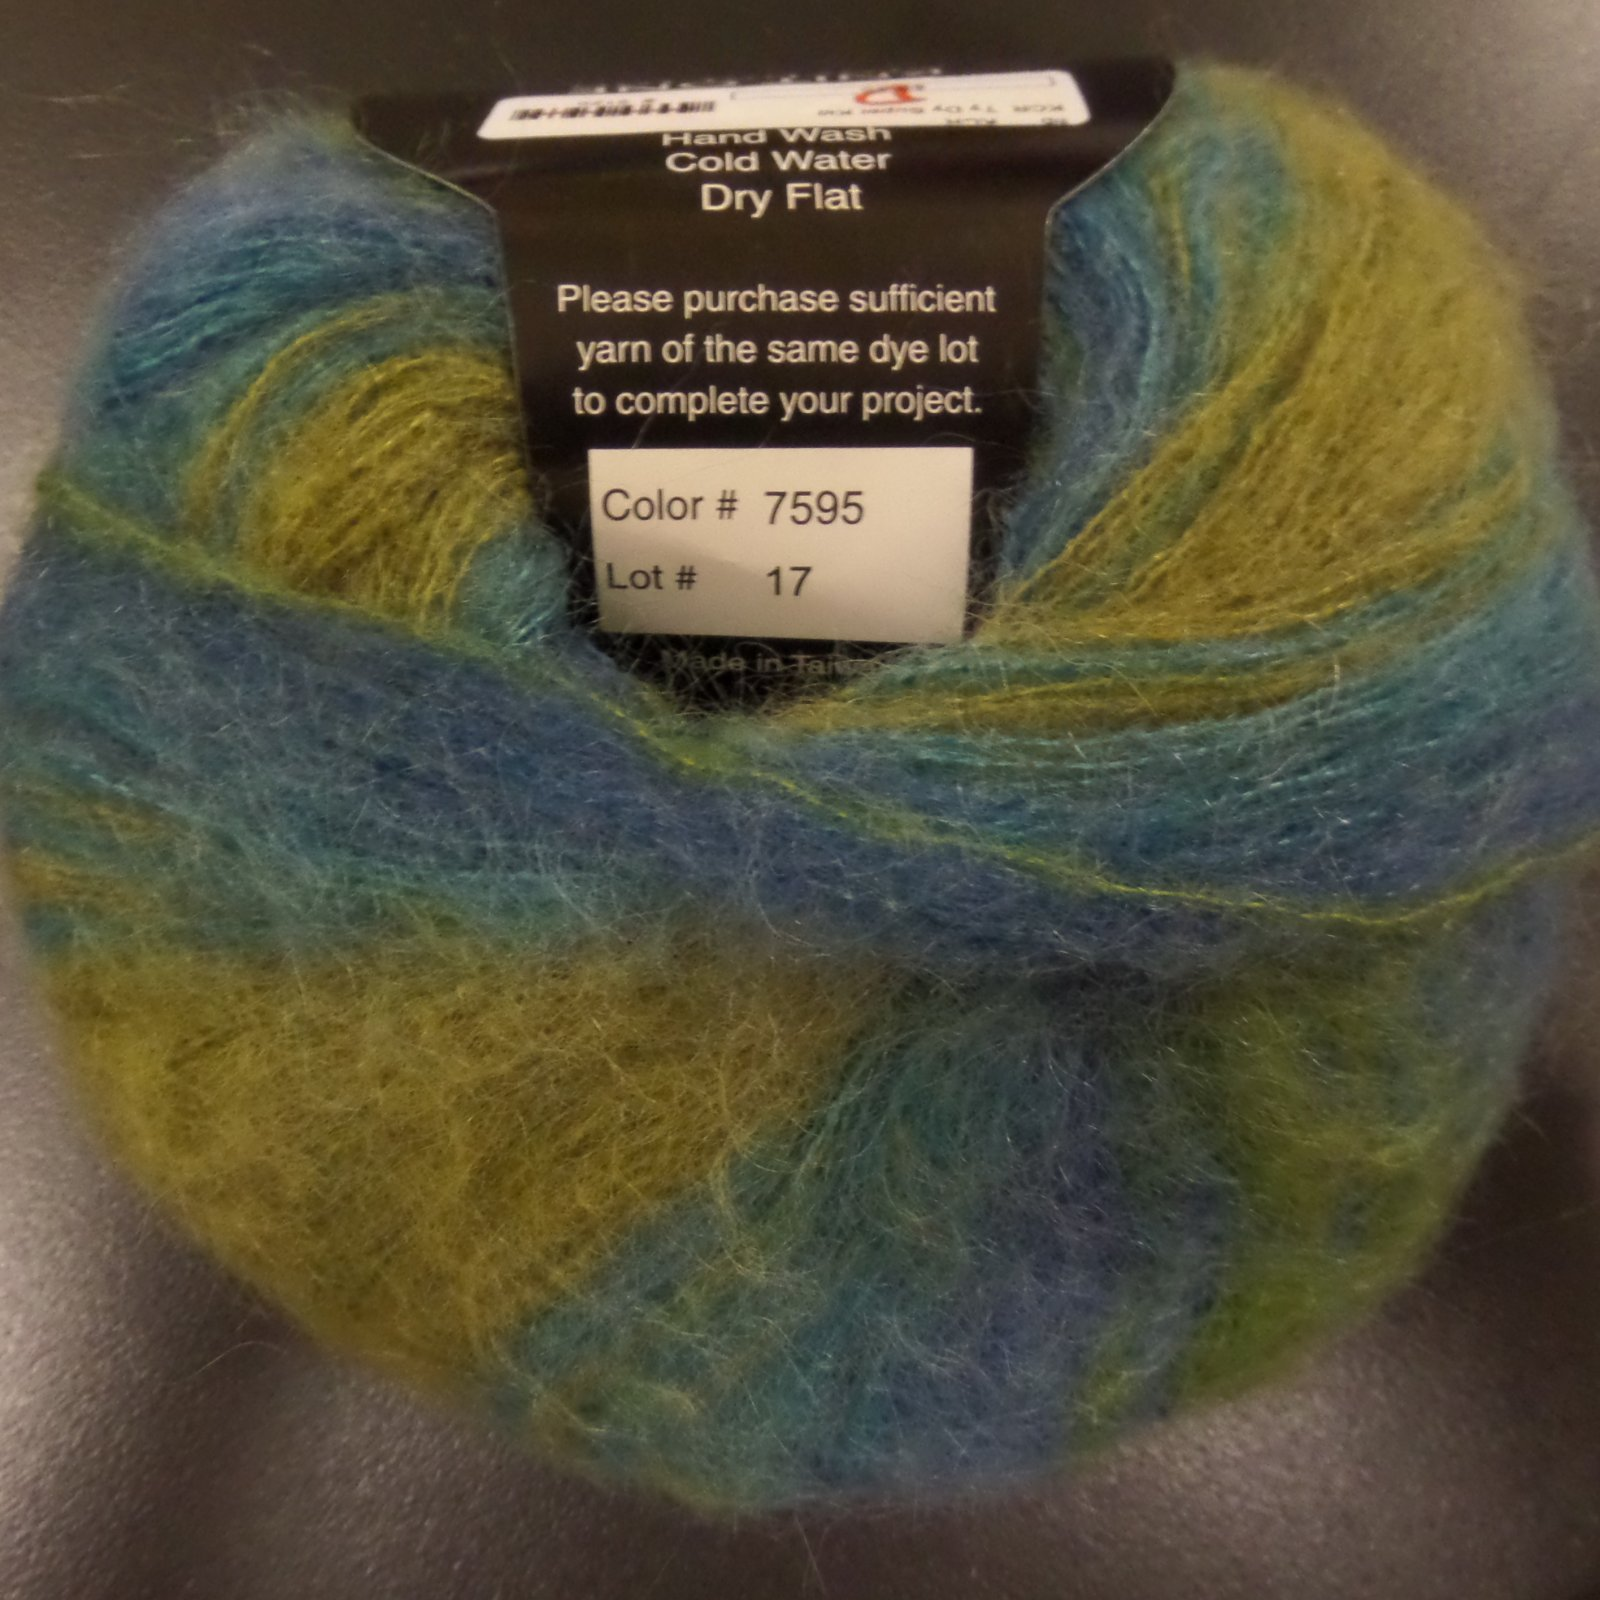 Ty-Dy Superkid yarn by Knit One Crochet Too